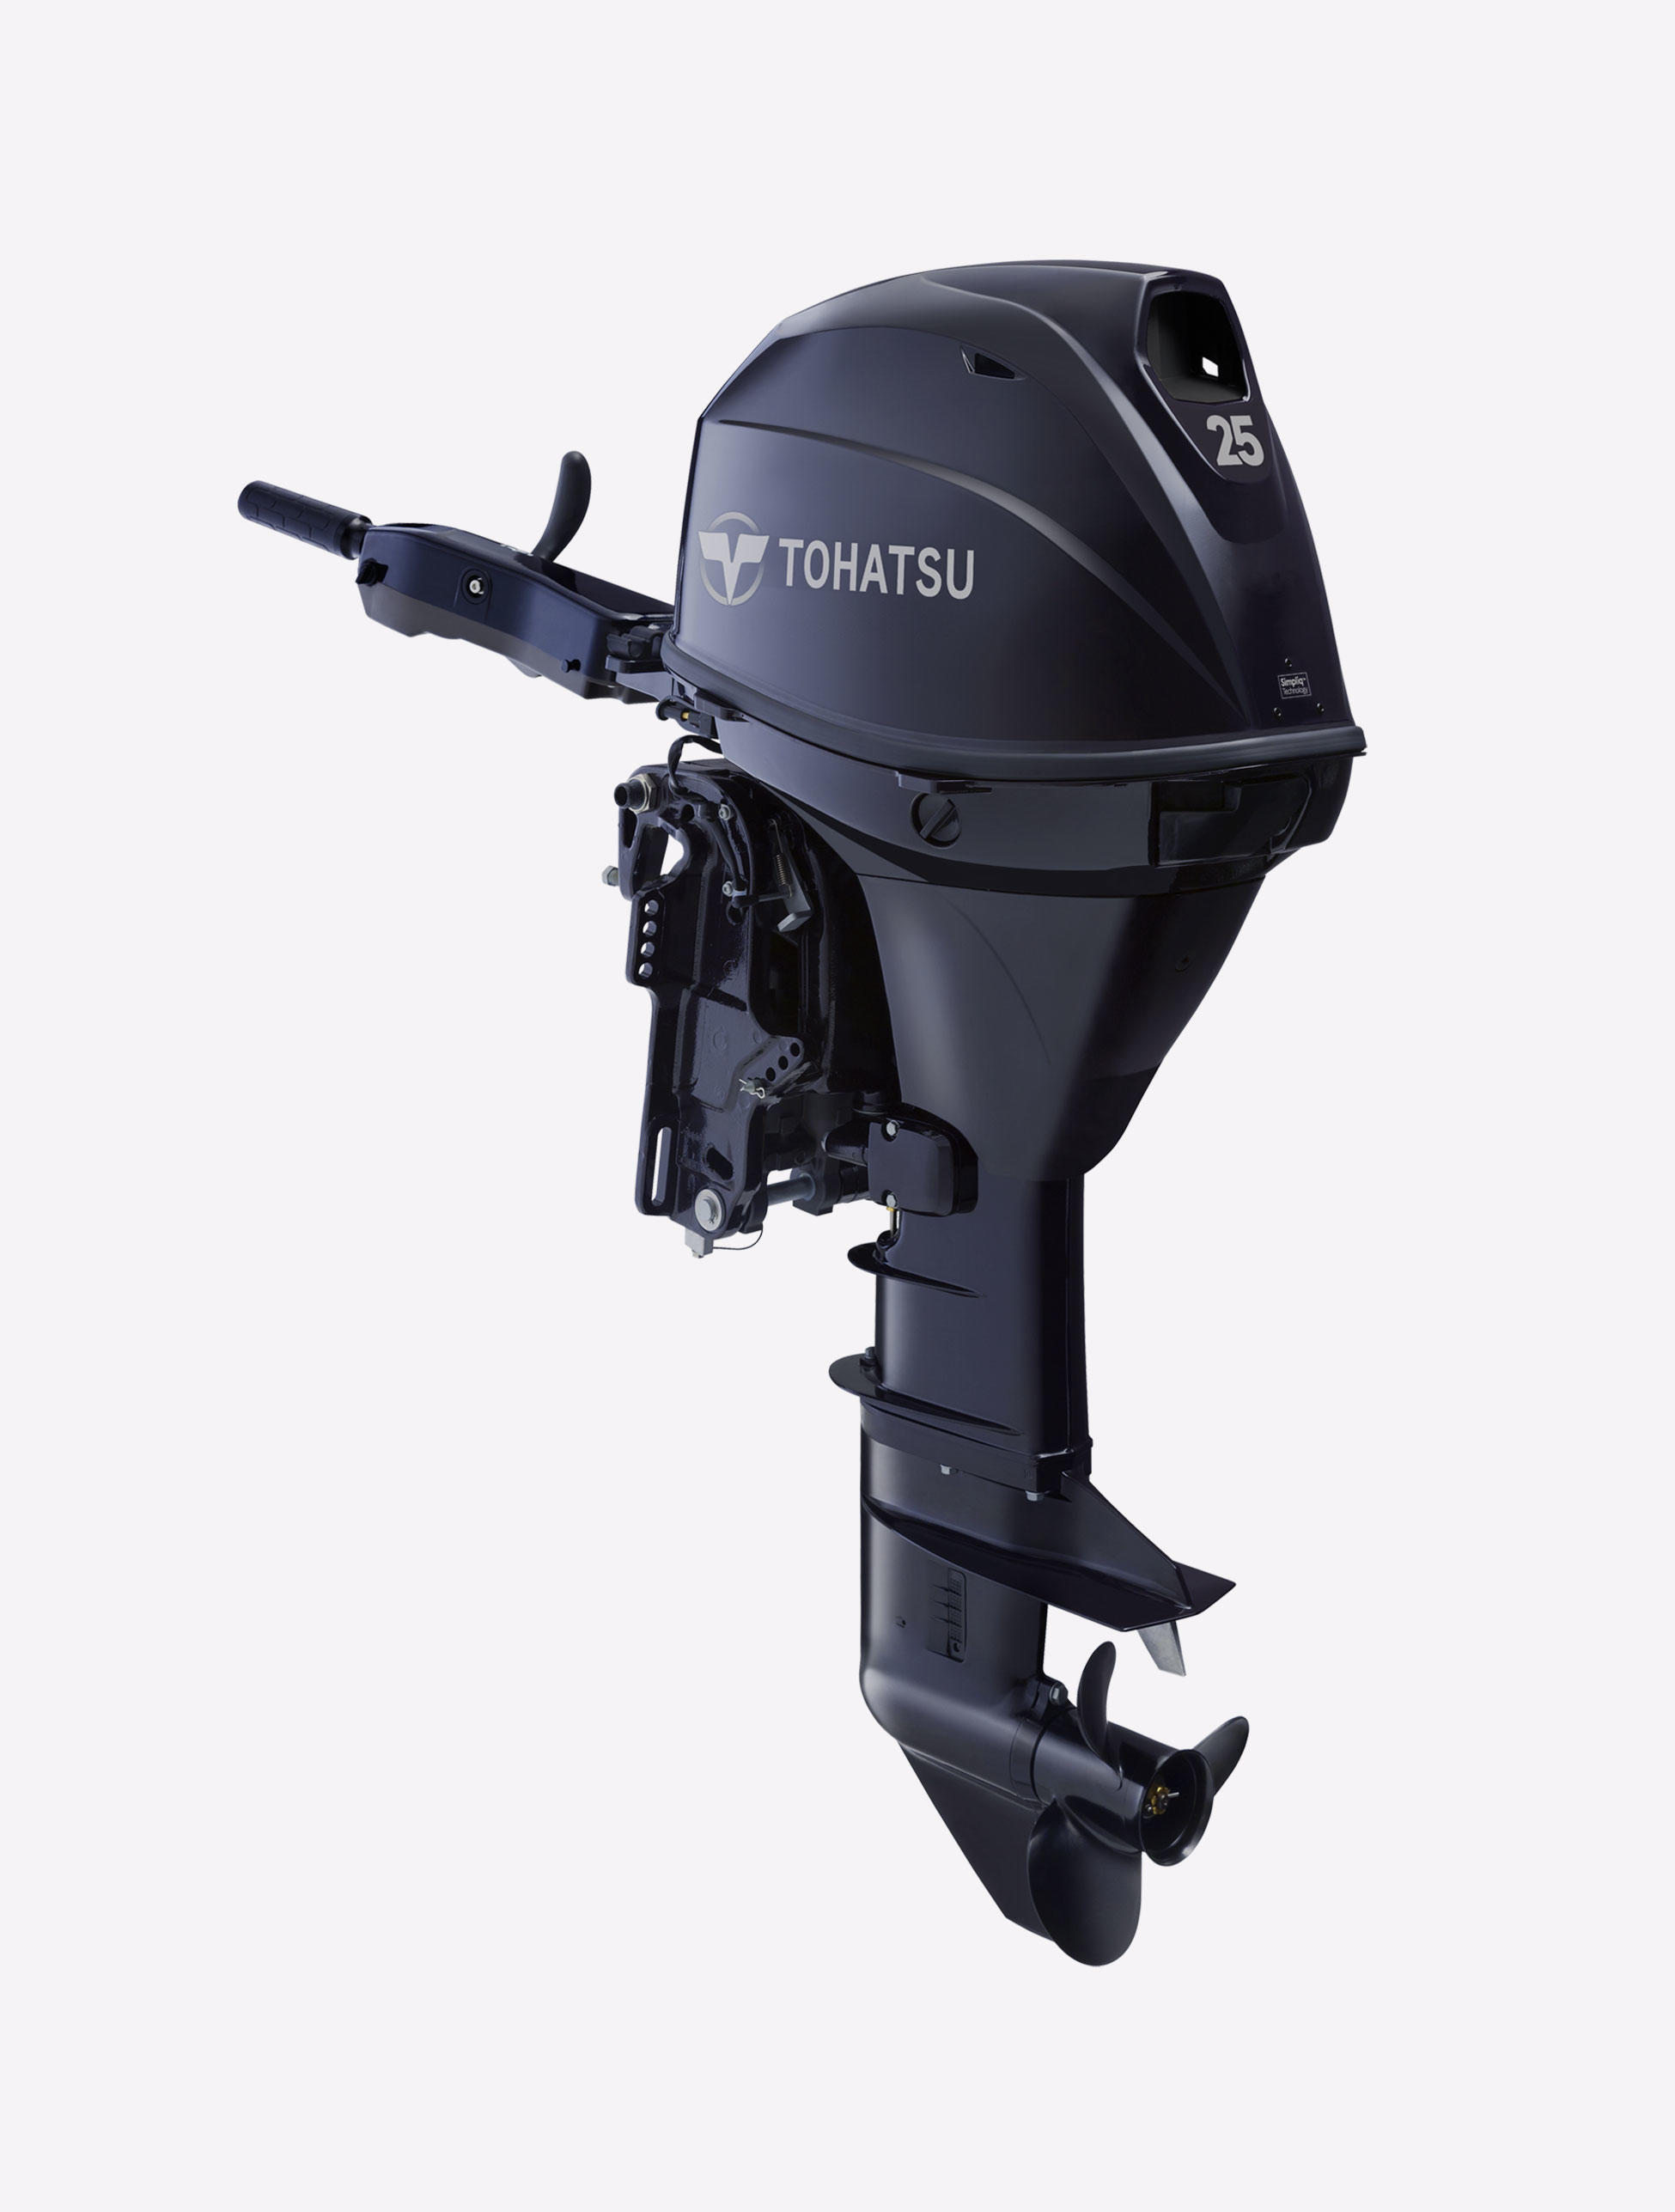 mfs25 mid range outboards tohatsu outboard motors rh tohatsu com Mercury 50 HP Outboard Motor Mercury 6 HP